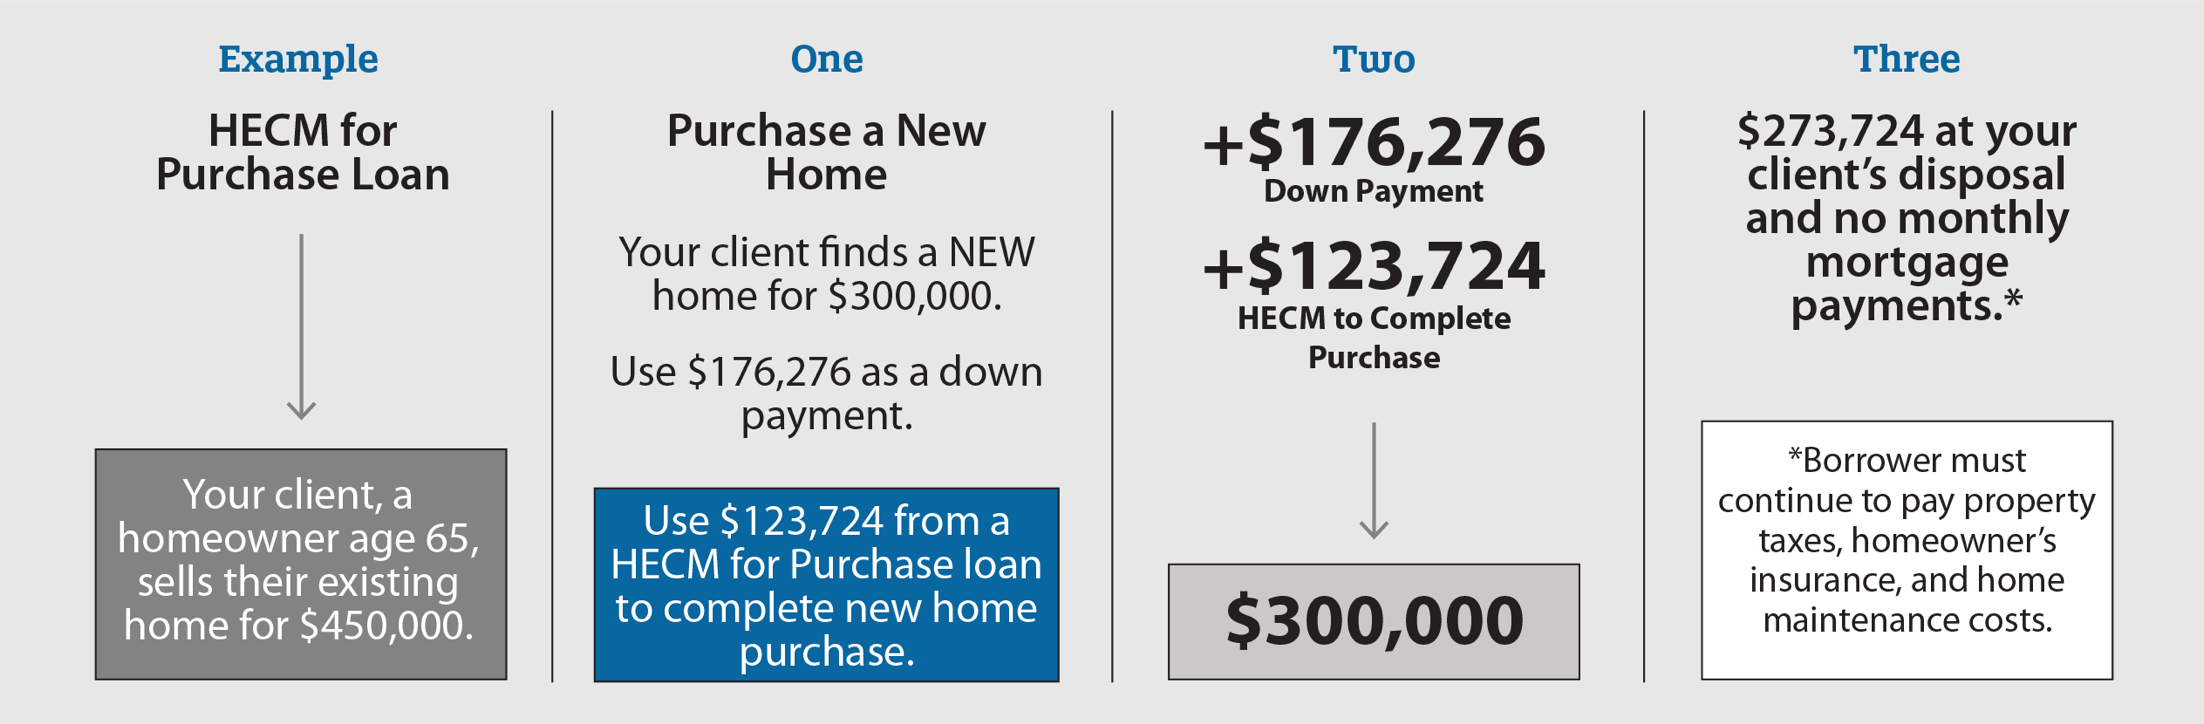 HECM for Purchase Loan Example